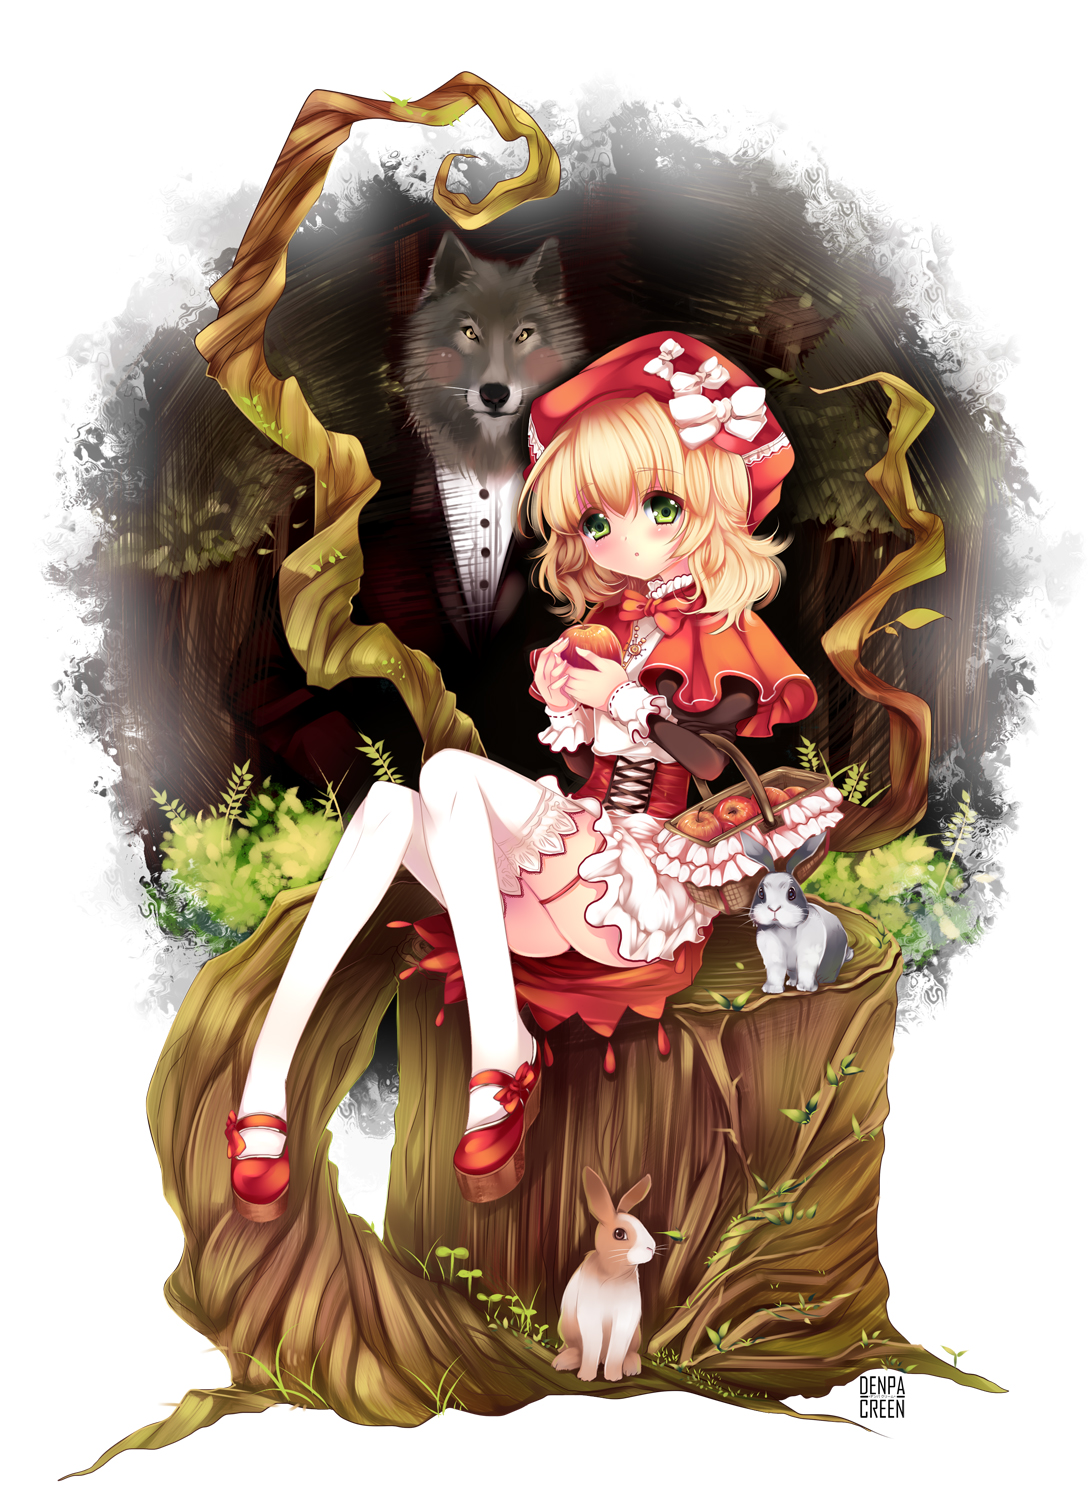 Little red riding hood wolf anime red riding hood character624646 zerochanlittle red riding hood wolf anime sciox Choice Image